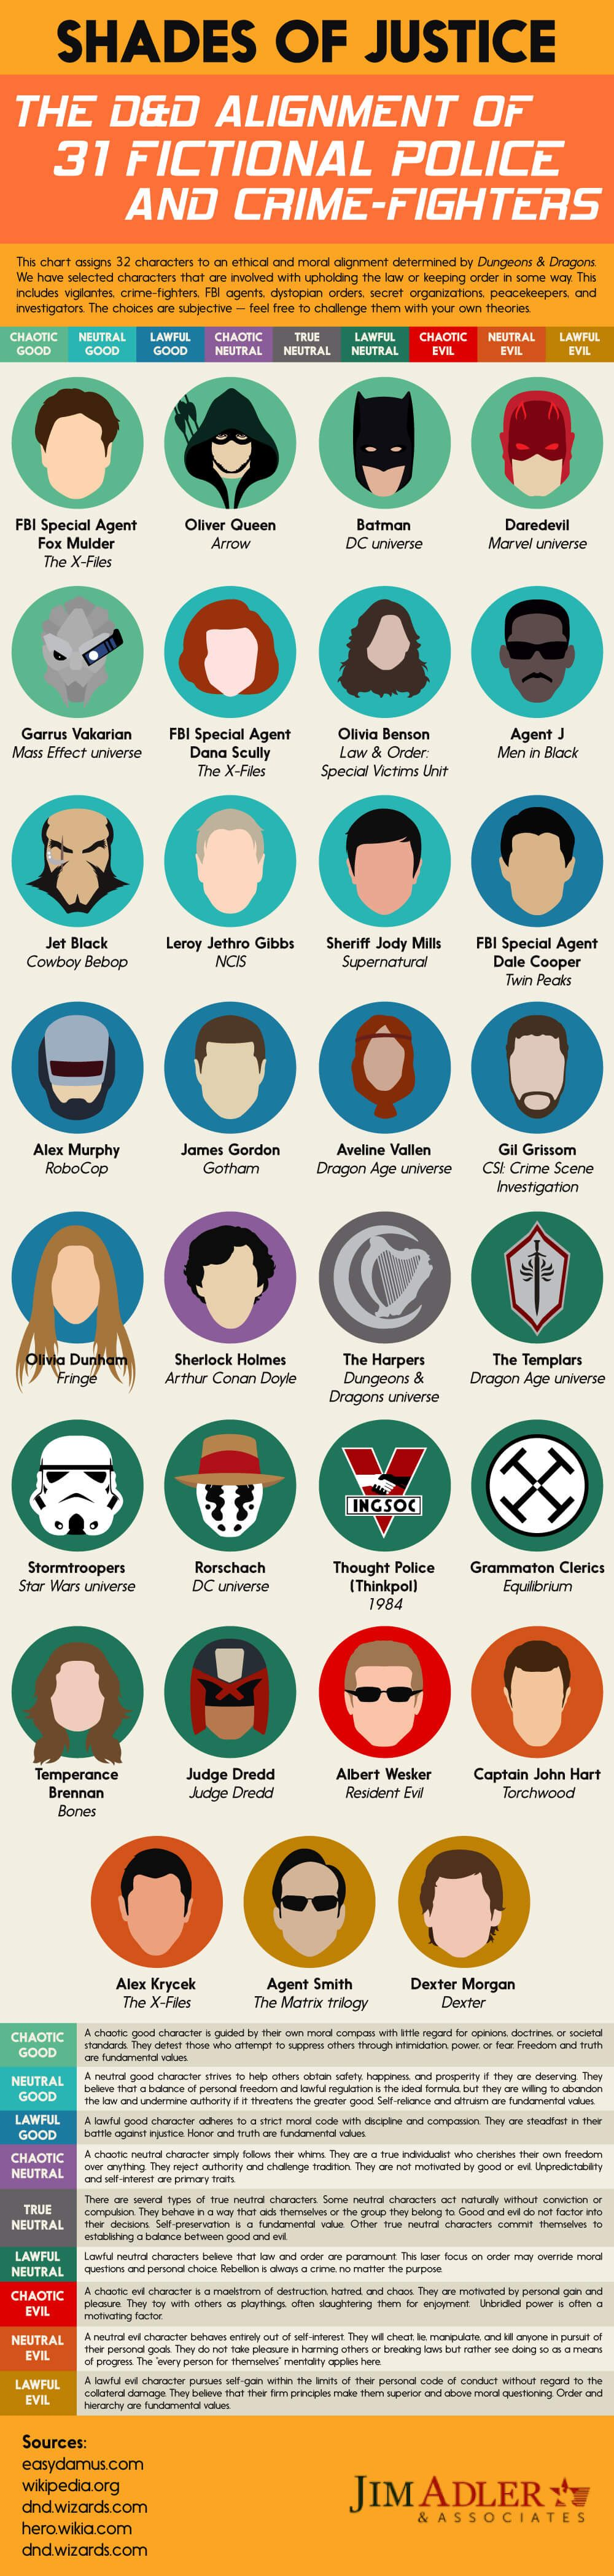 Shades of Justice: The D&D Alignment of 31 Fictional Police and Crime-Fighters